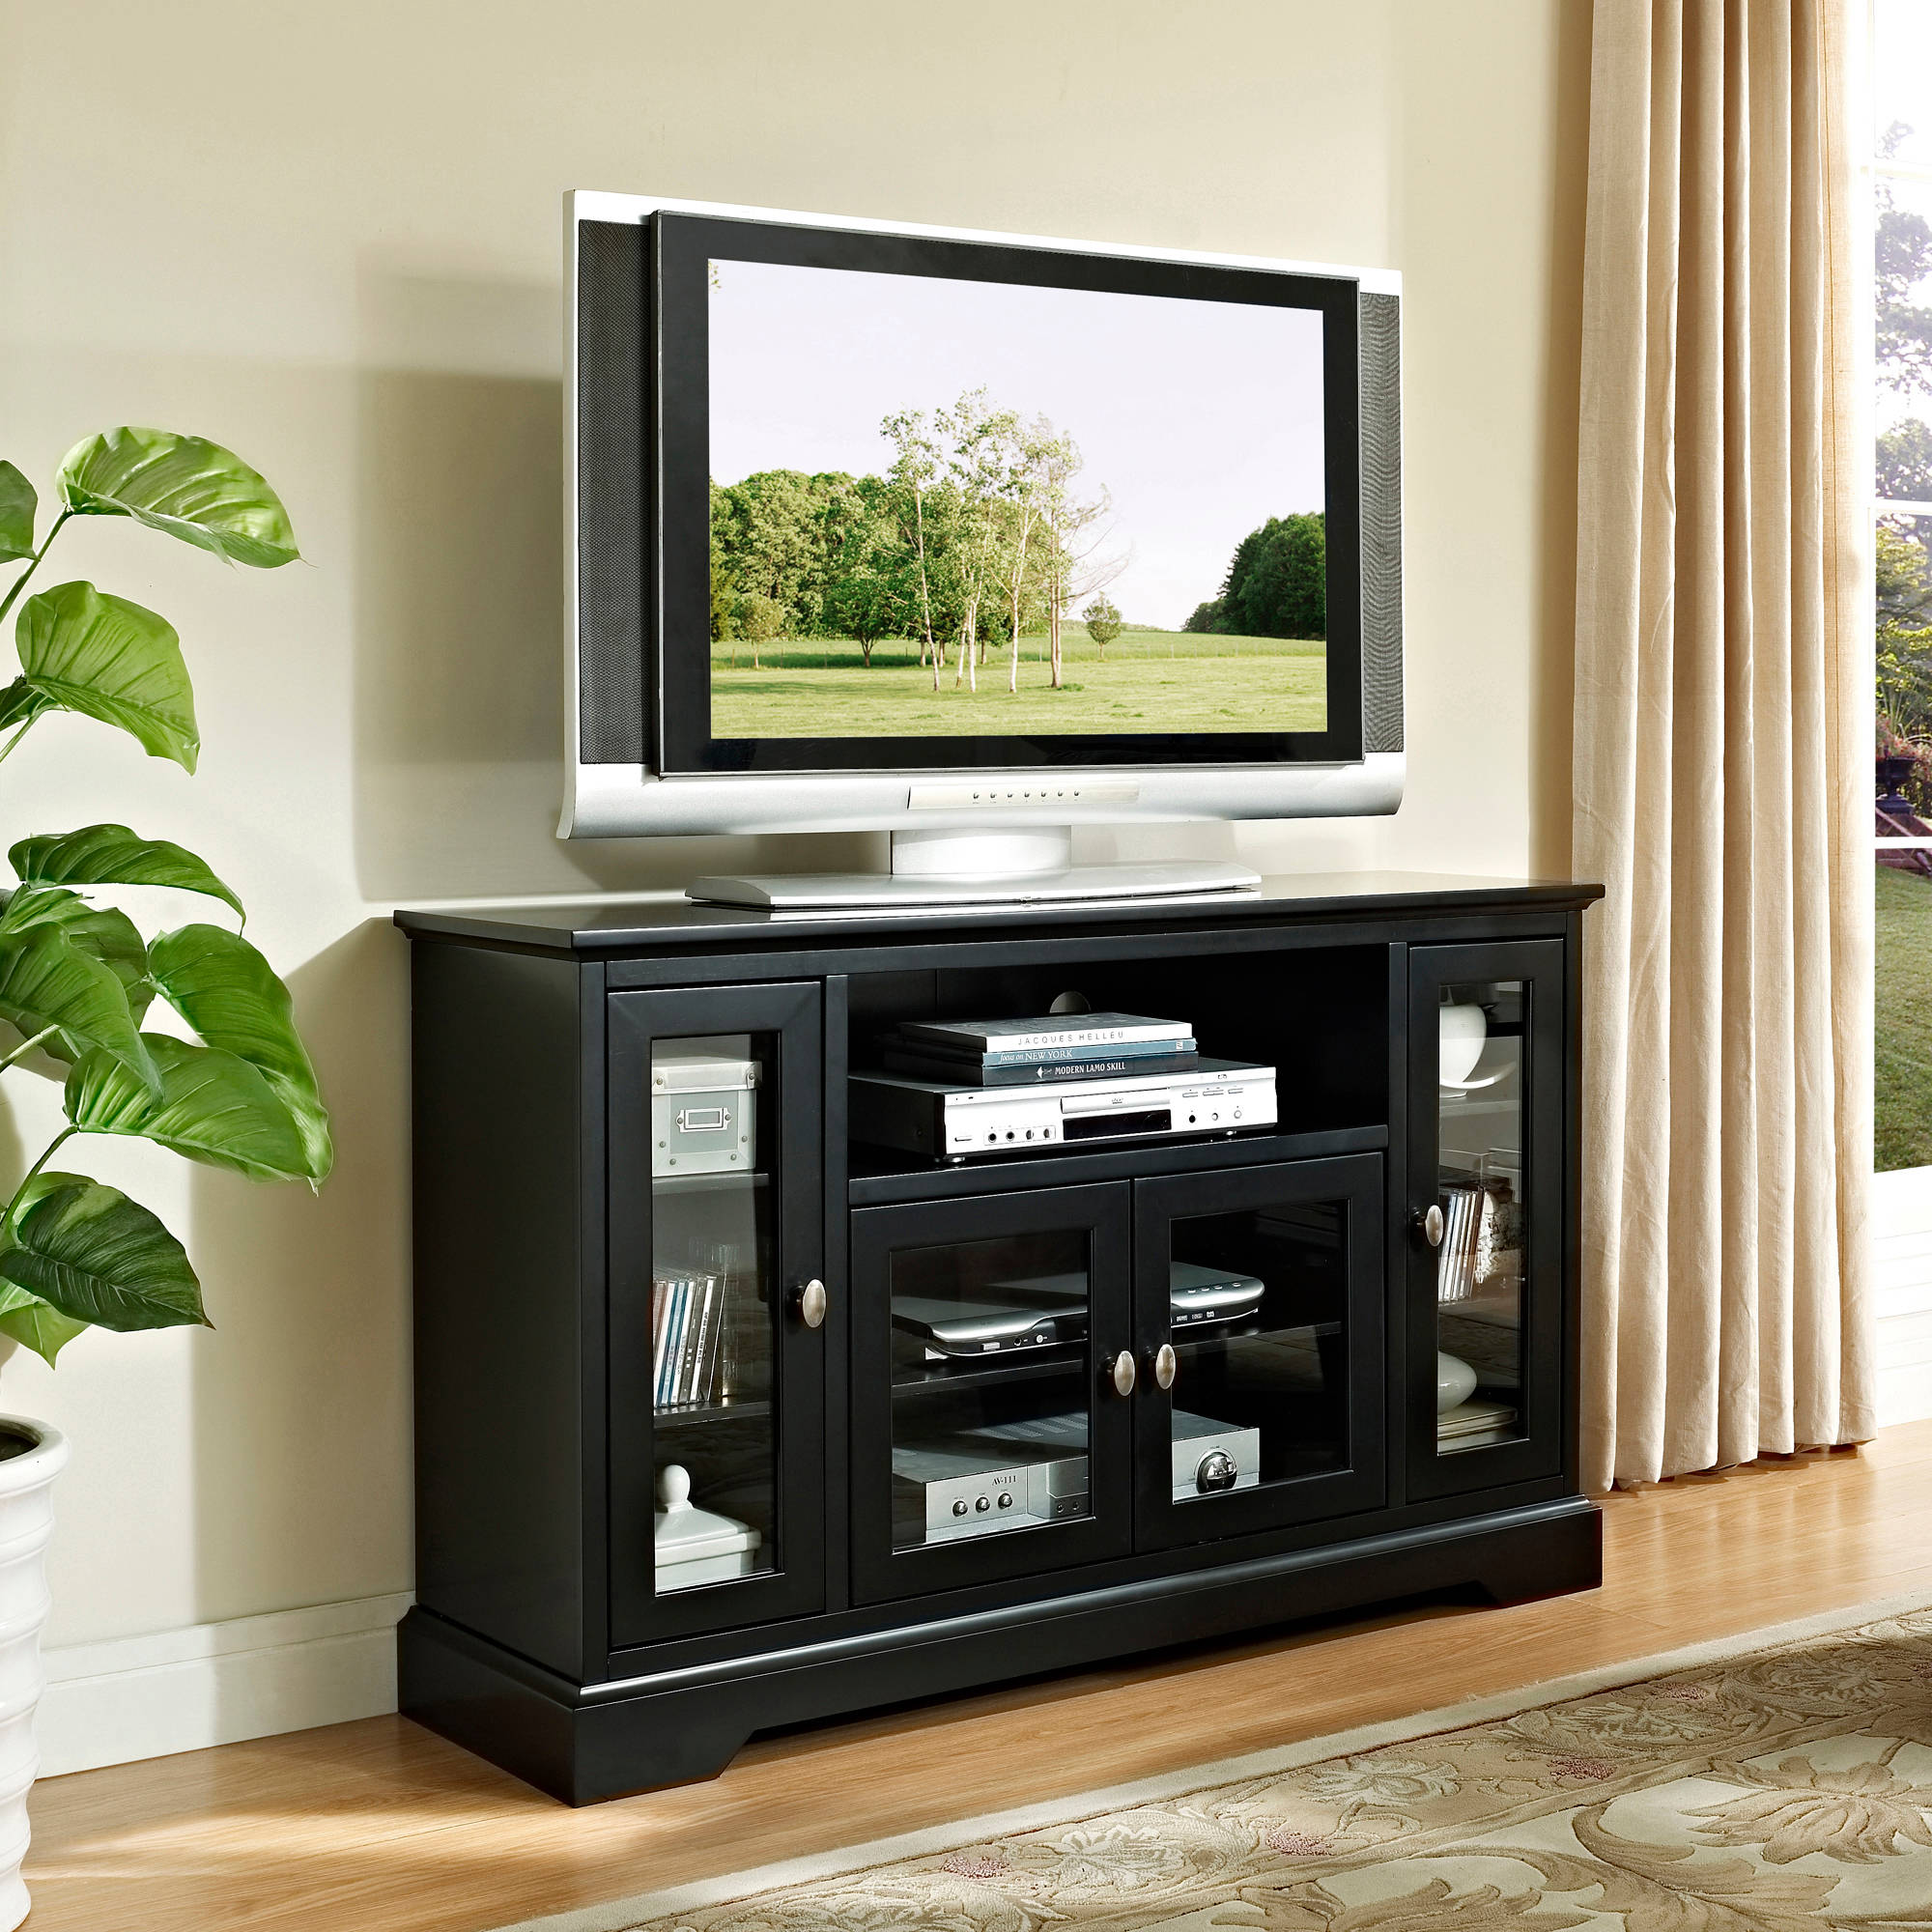 Walker Edison Highboy Style Wood Media Storage TV Stand Console For TVs Up  To 55